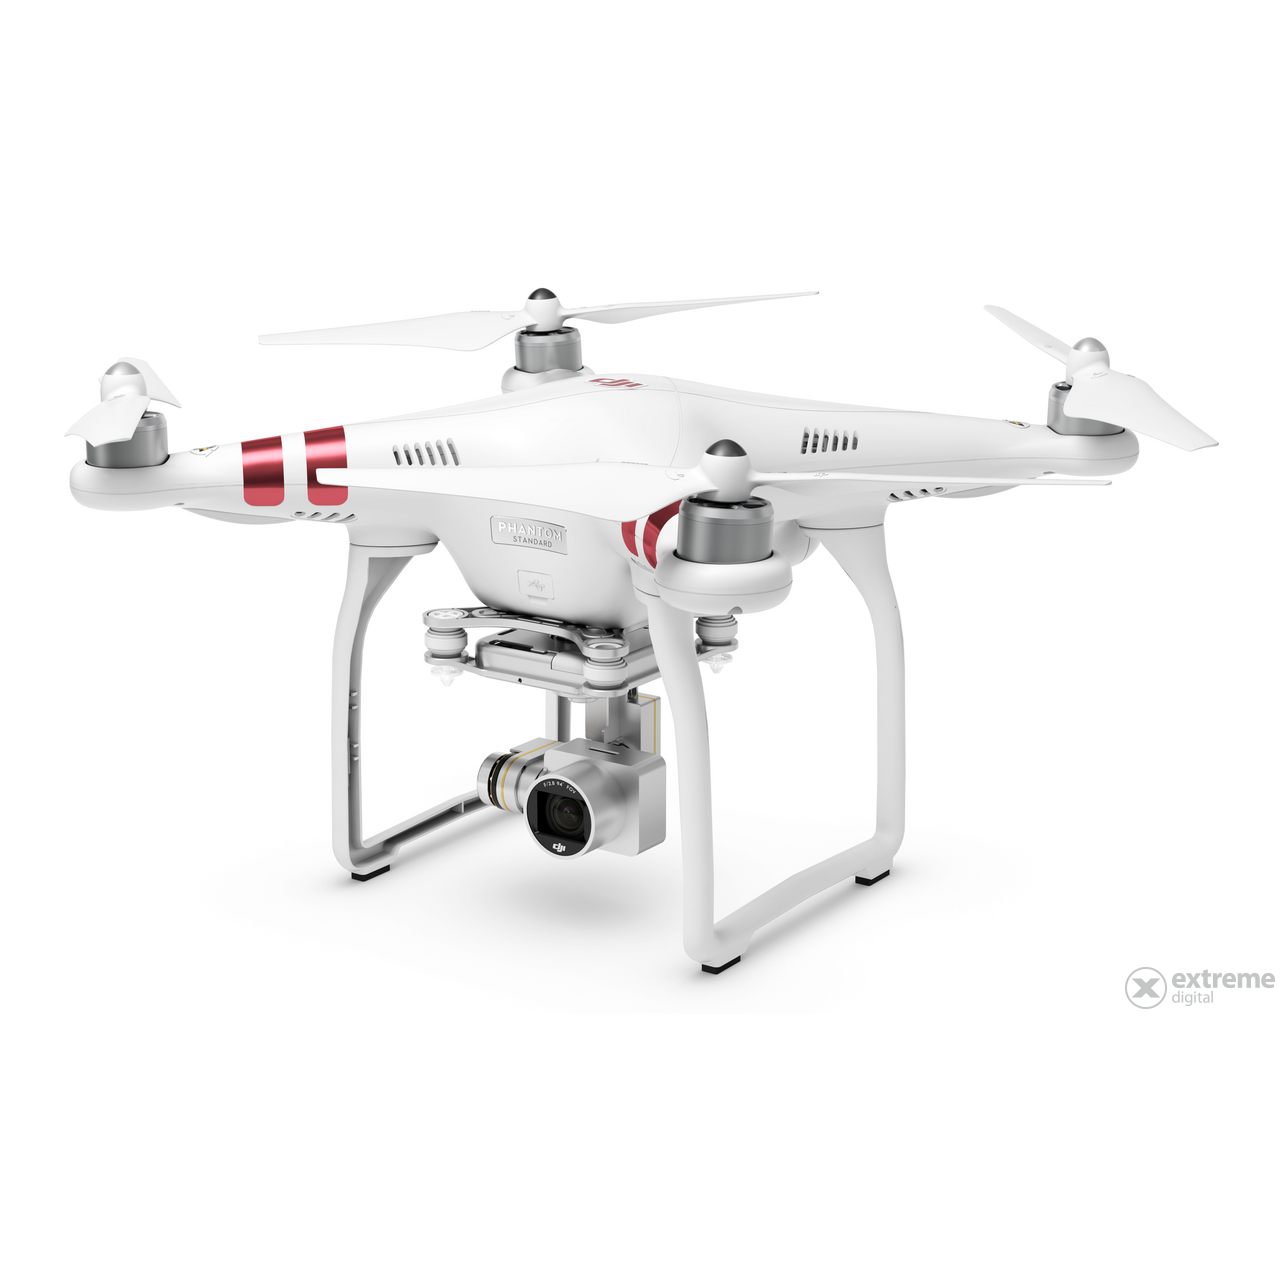 drona dji phantom 3 standard extreme digital. Black Bedroom Furniture Sets. Home Design Ideas